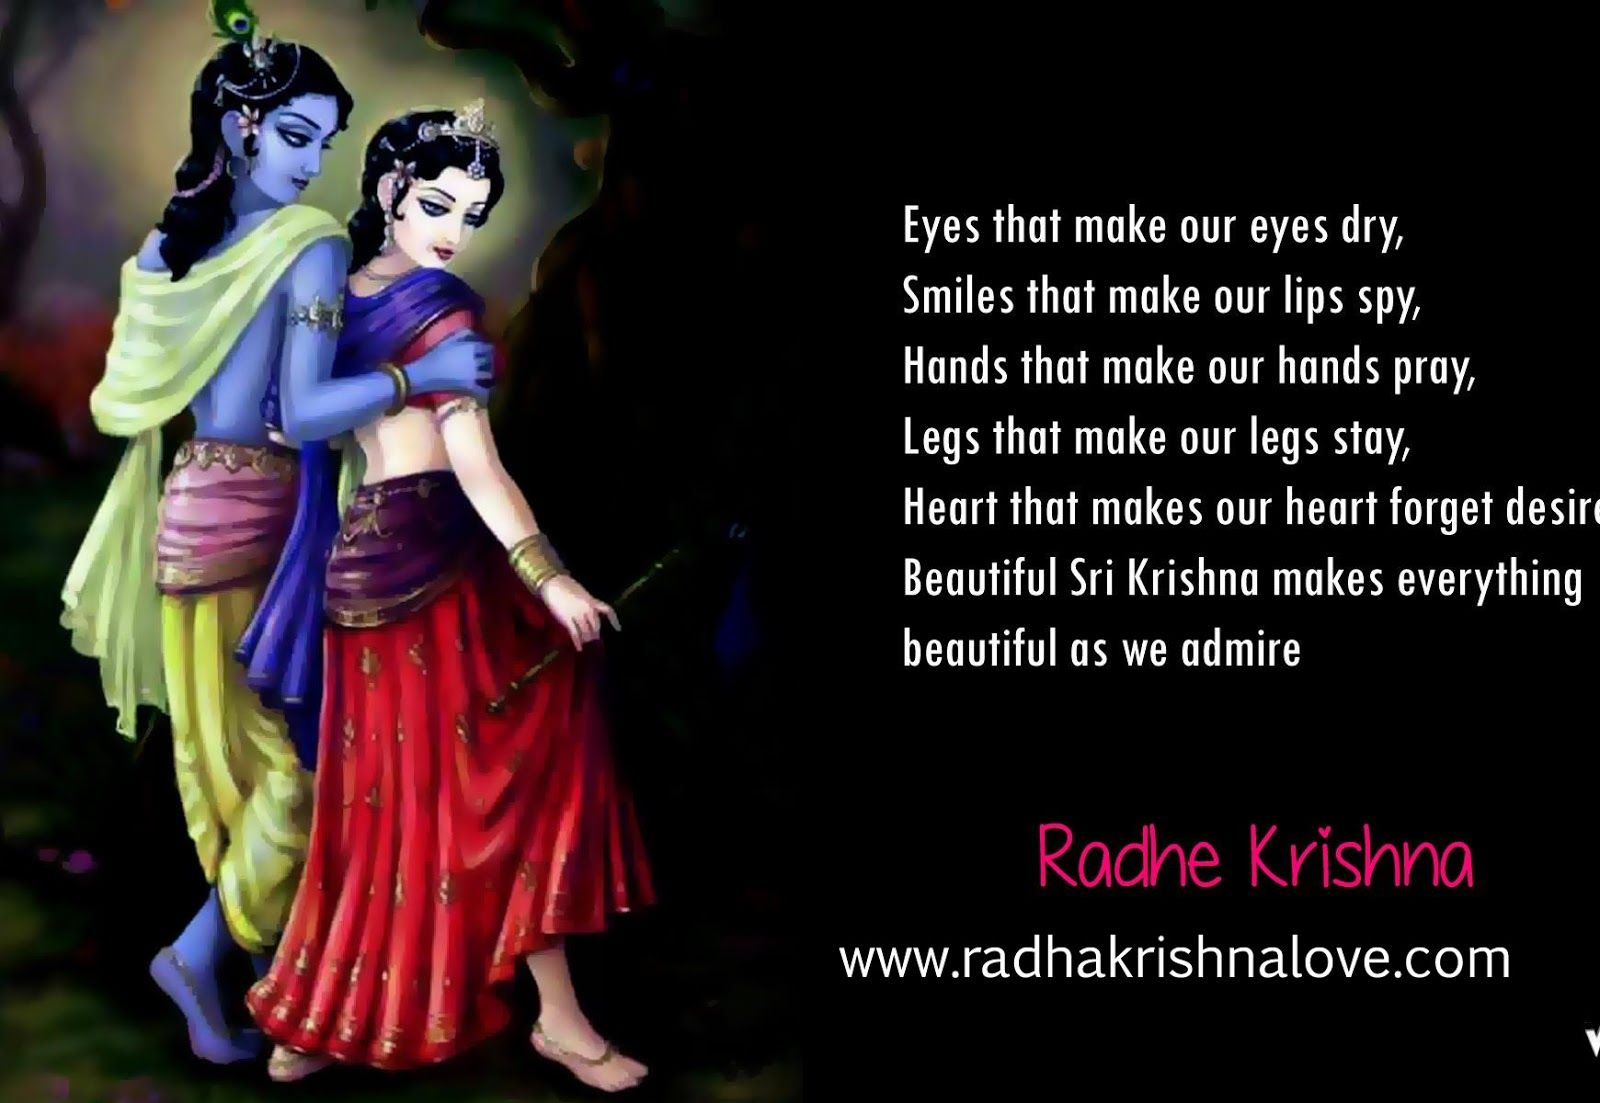 Lord Krishna Quotes Radha Krishna Quotes On Love In English  Radhe  Pinterest  Radha